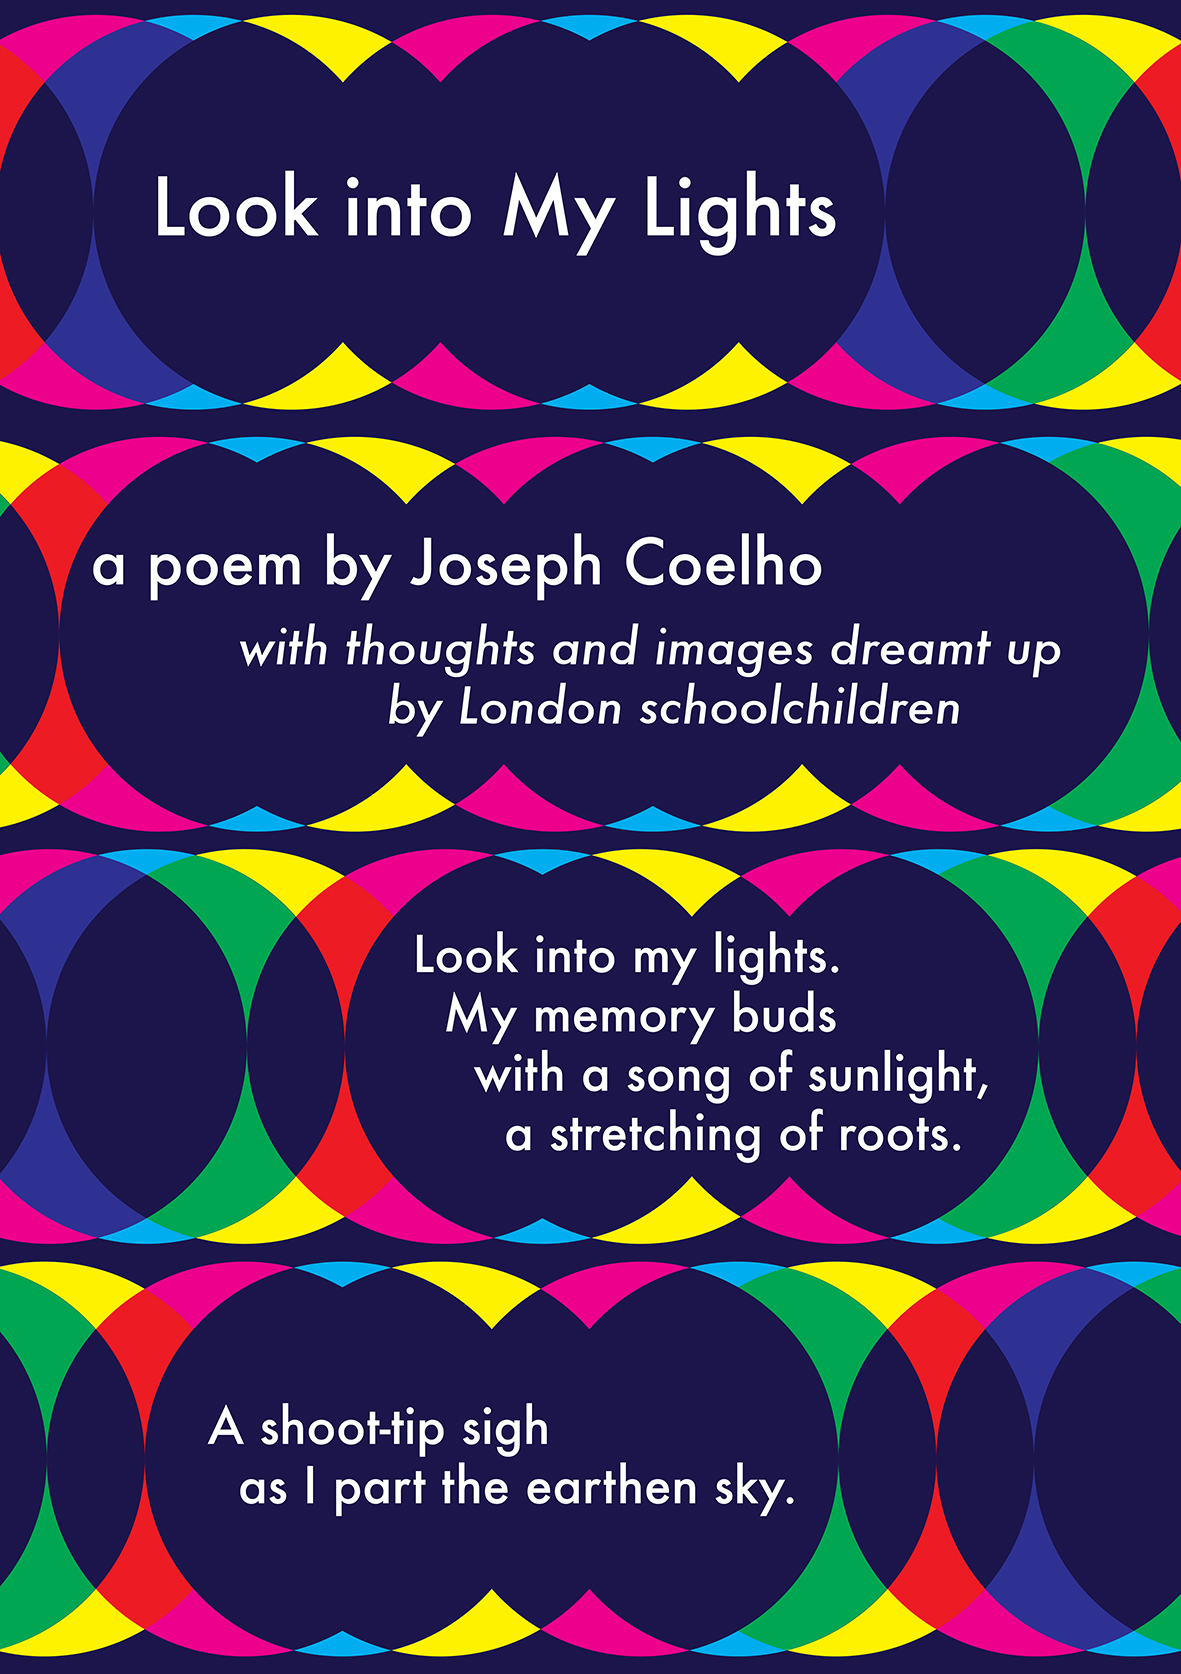 the start of Joseph Coelho's poem 'Look into My Lights' on the banner designed by James Brown